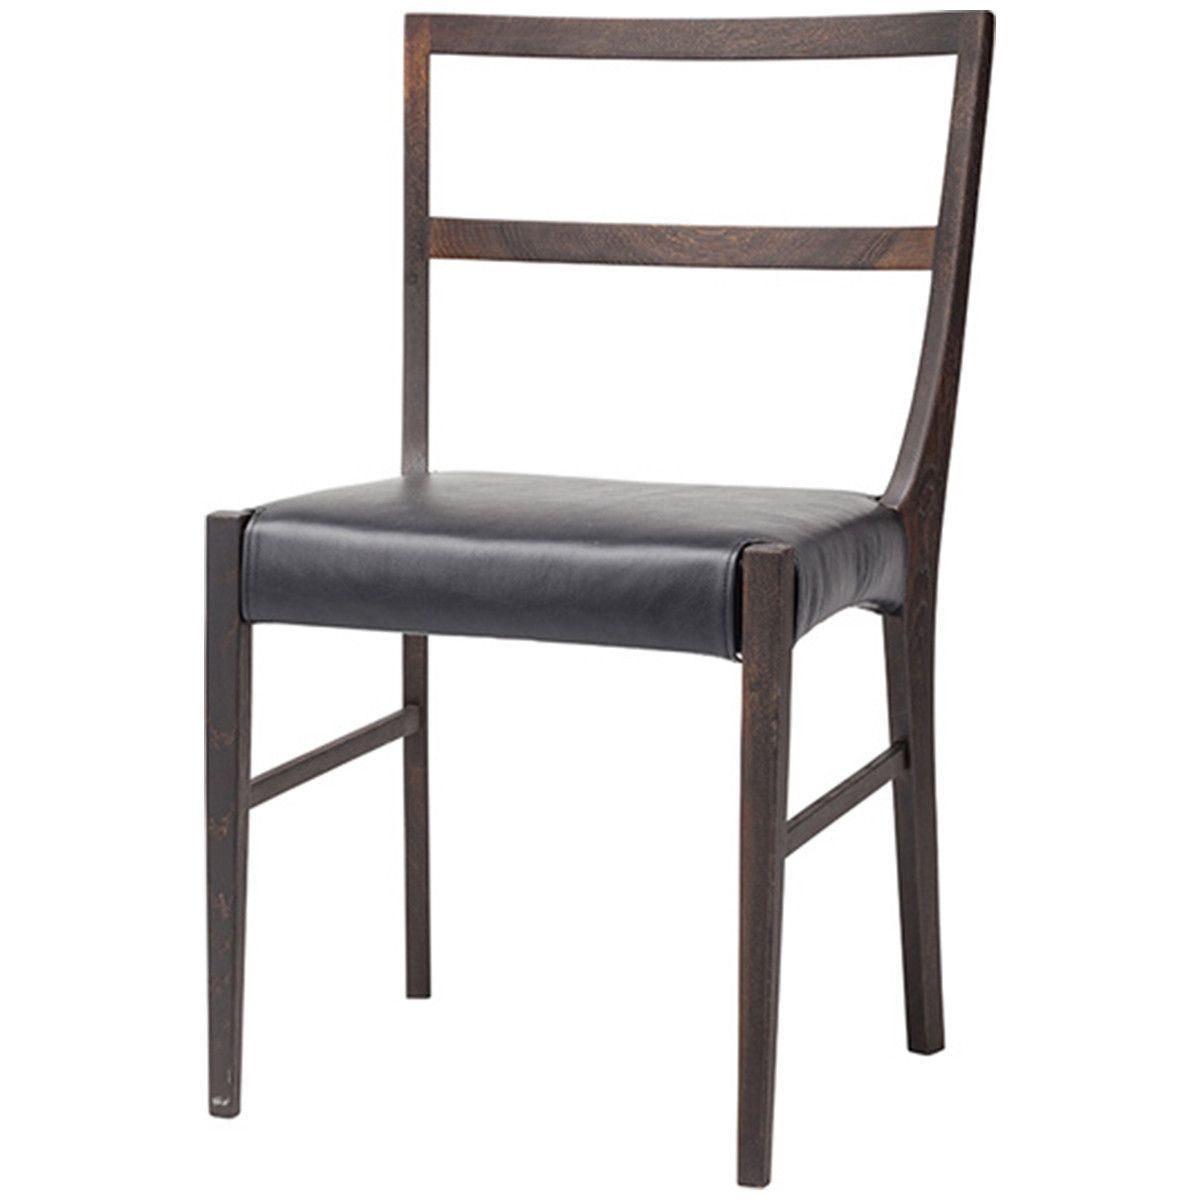 Nuevo Living Hanna Dining Chair Leather Dining Chairs Dining